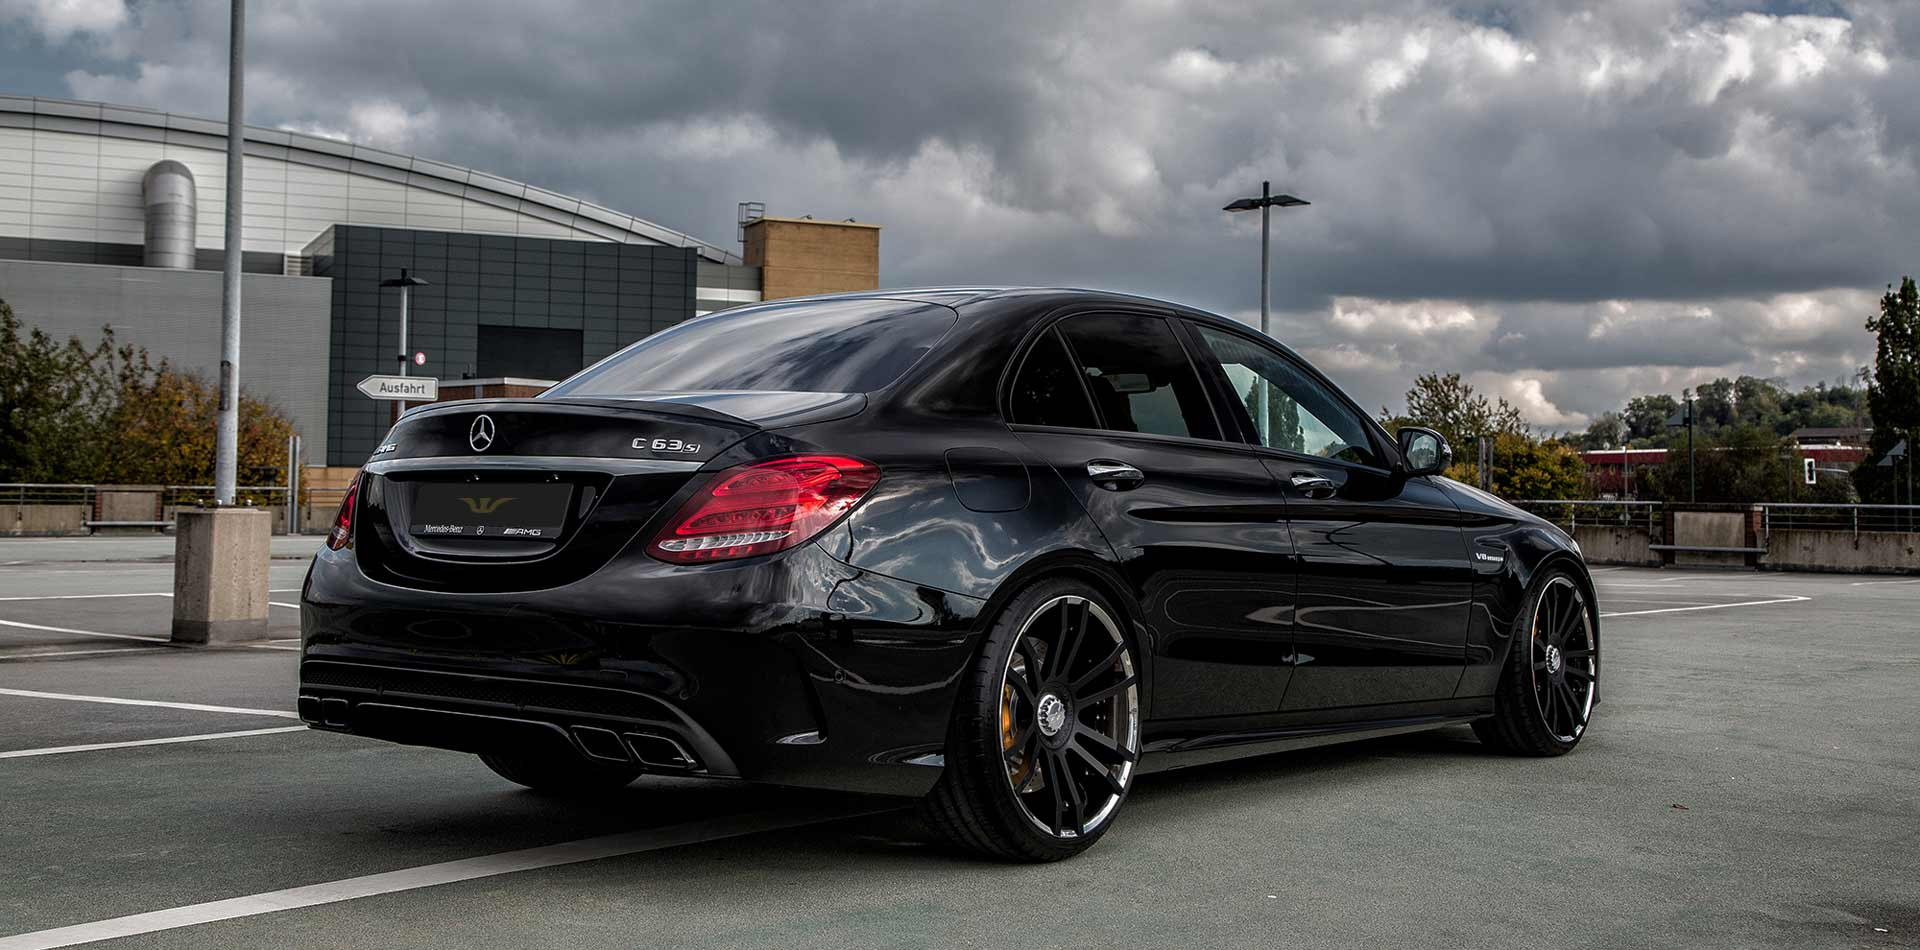 mercedes c63 amg felgen tuning auspuffanlagen. Black Bedroom Furniture Sets. Home Design Ideas